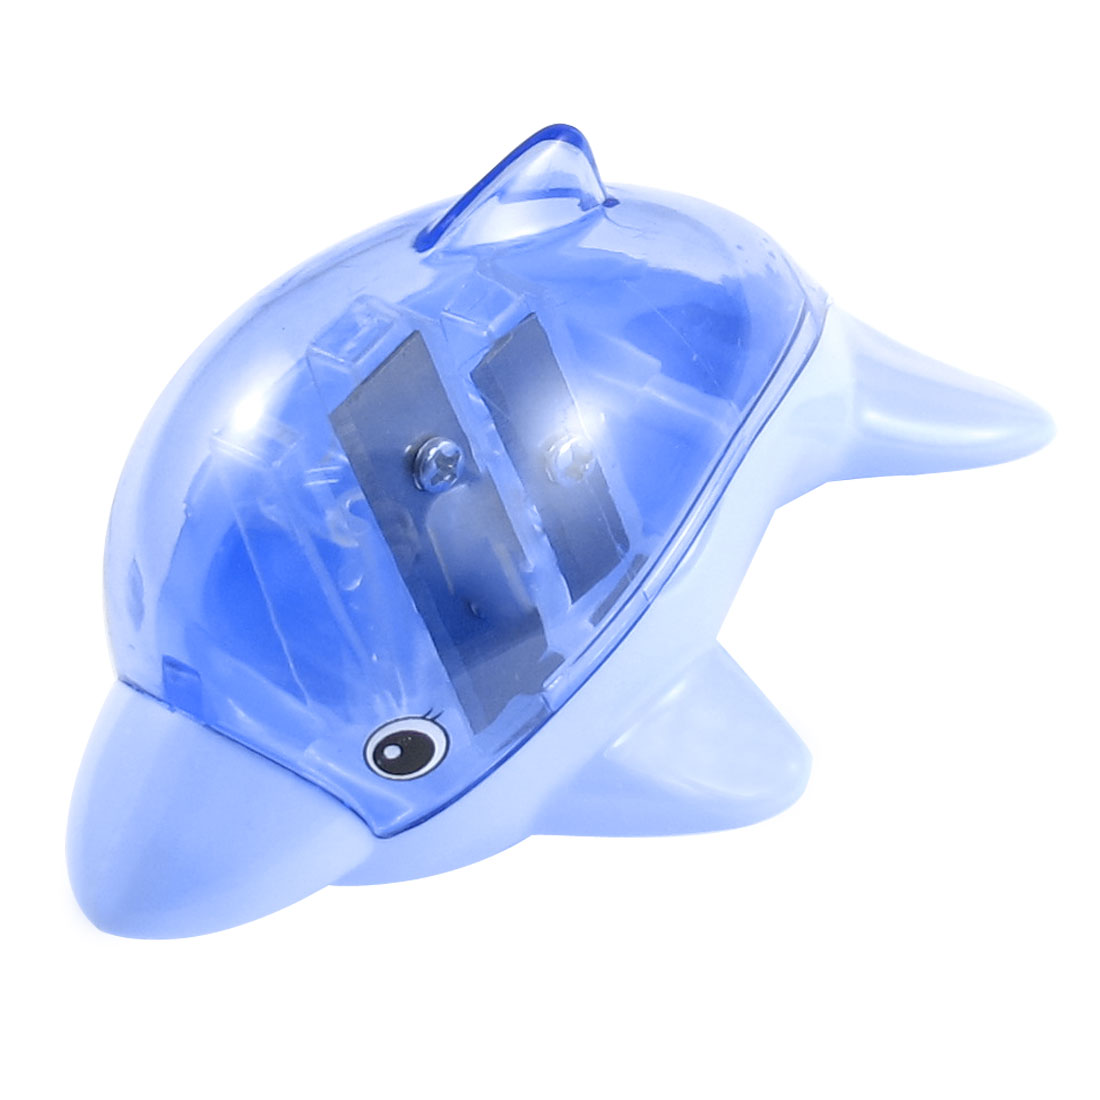 Dolphin Design Blue Plastic Shell Double Hole Pencil Sharpener for Students